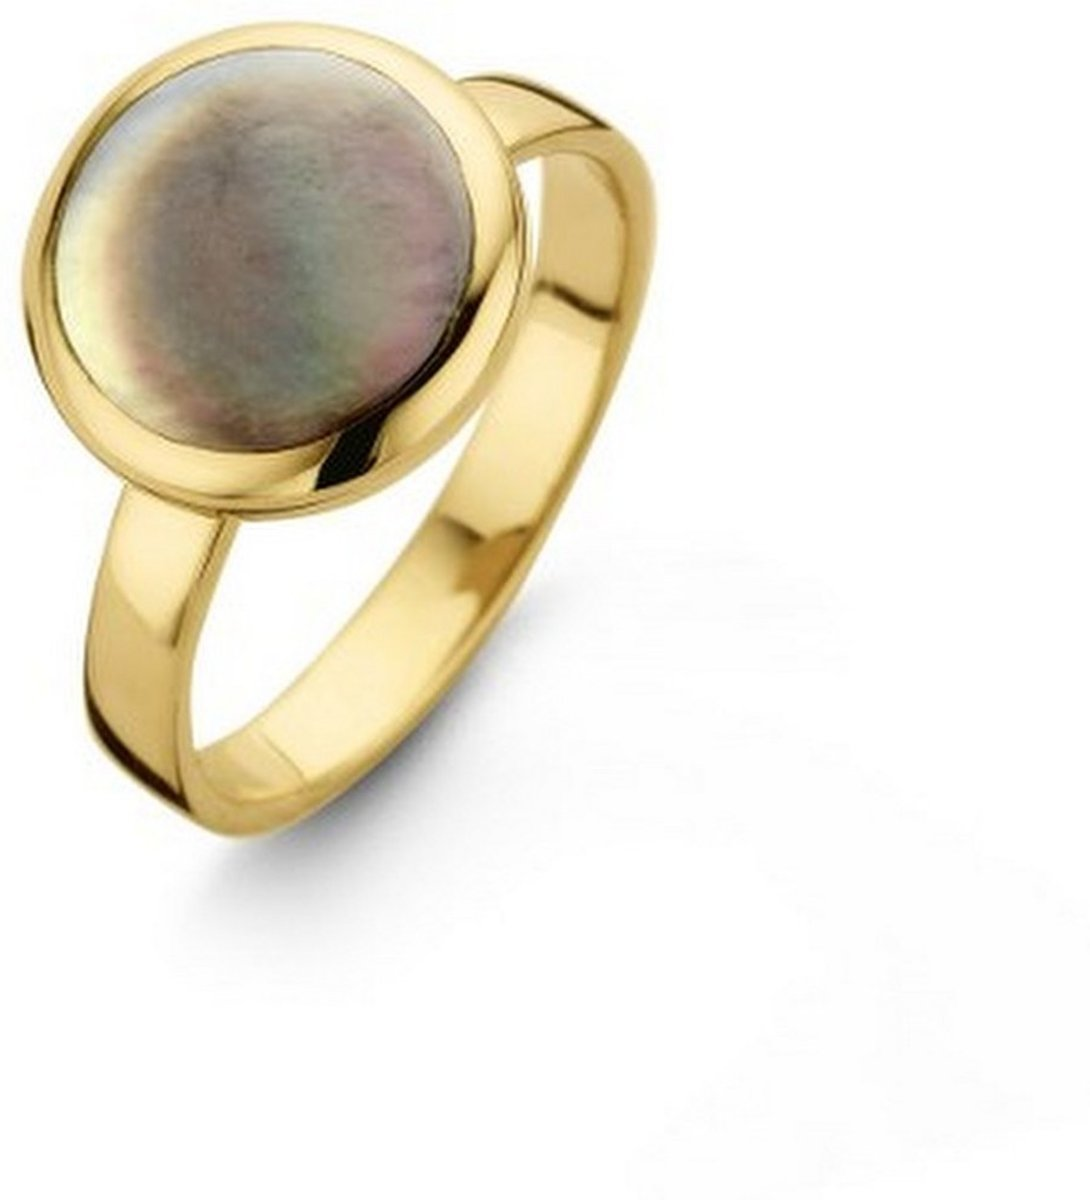 Casa Jewelry Ring Pom Grey L 52 - Goud Verguld kopen